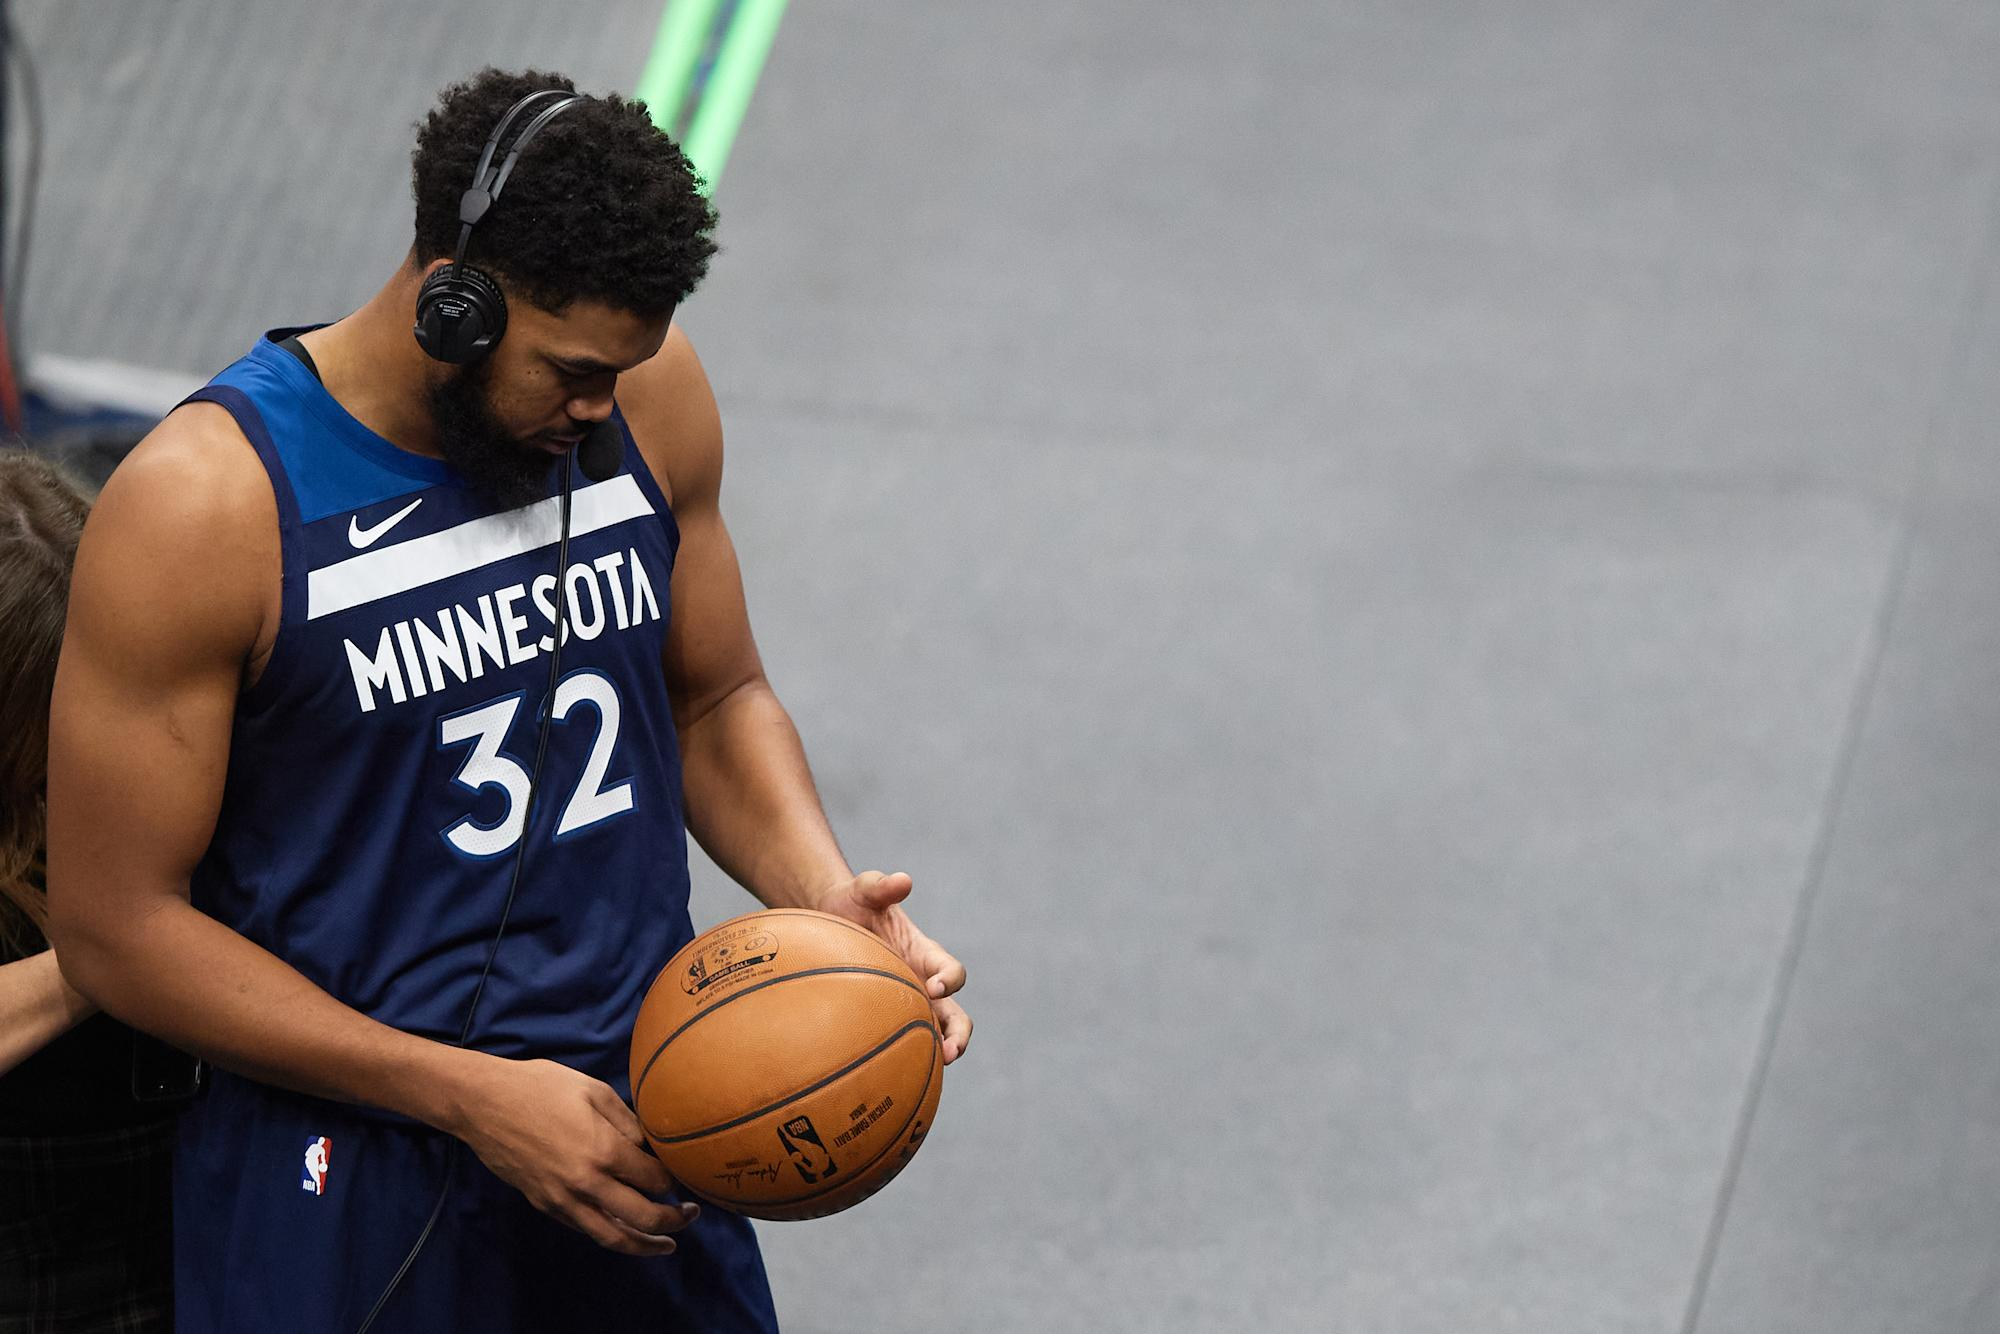 Karl-Anthony Towns says he was 'happy I was alive' after being hit by drunk driver - Yahoo Sports